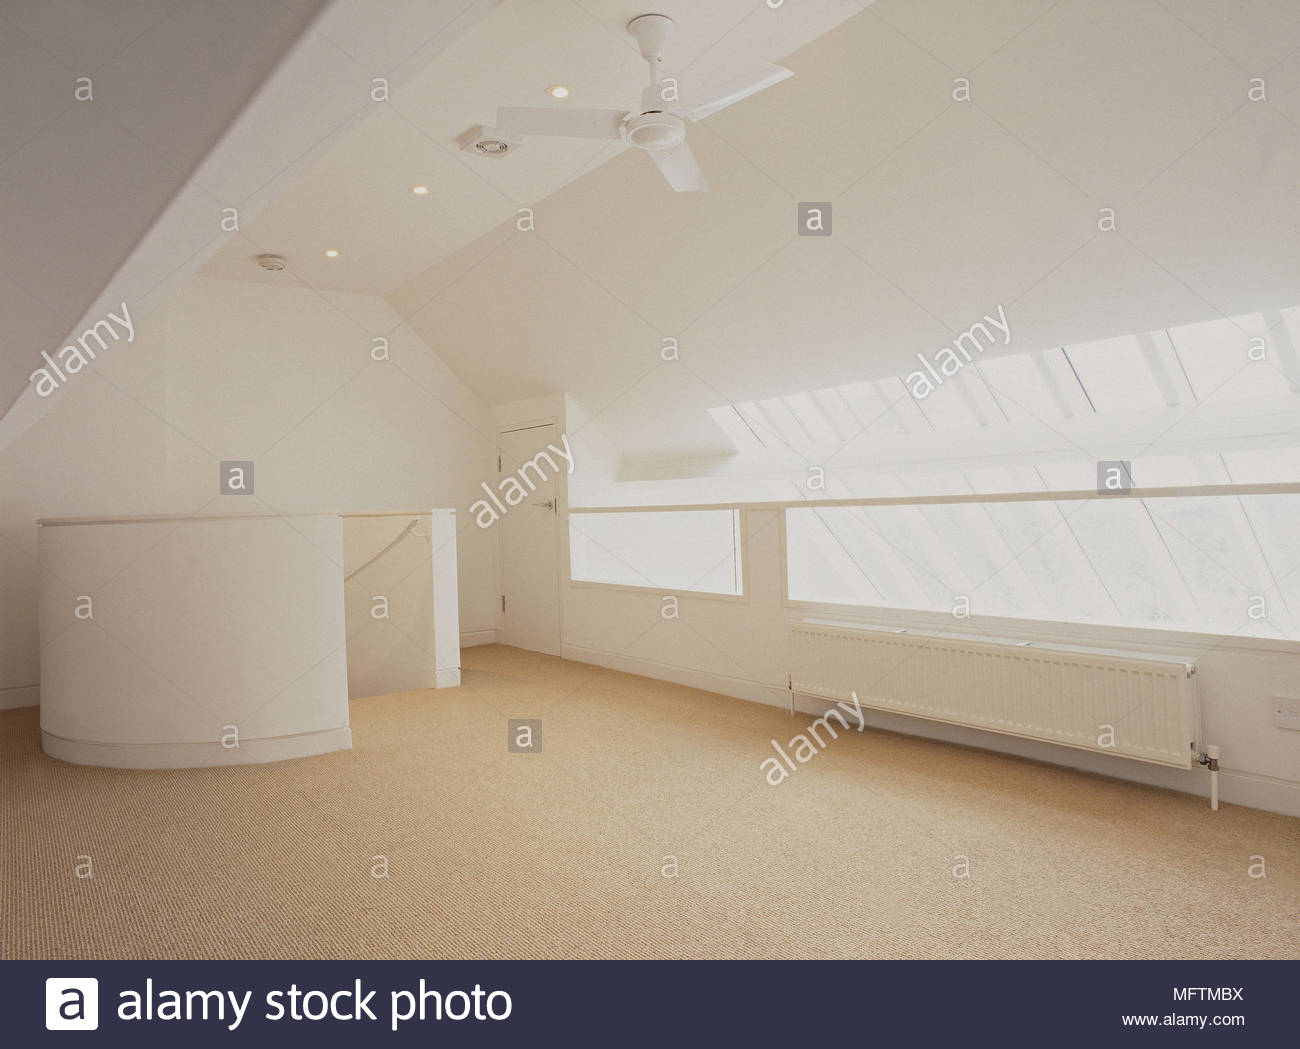 Ceiling light with fan moving stock photos ceiling light with fan carpeted and empty loft apartment with glass panelled windows and ceiling fan stock image aloadofball Choice Image